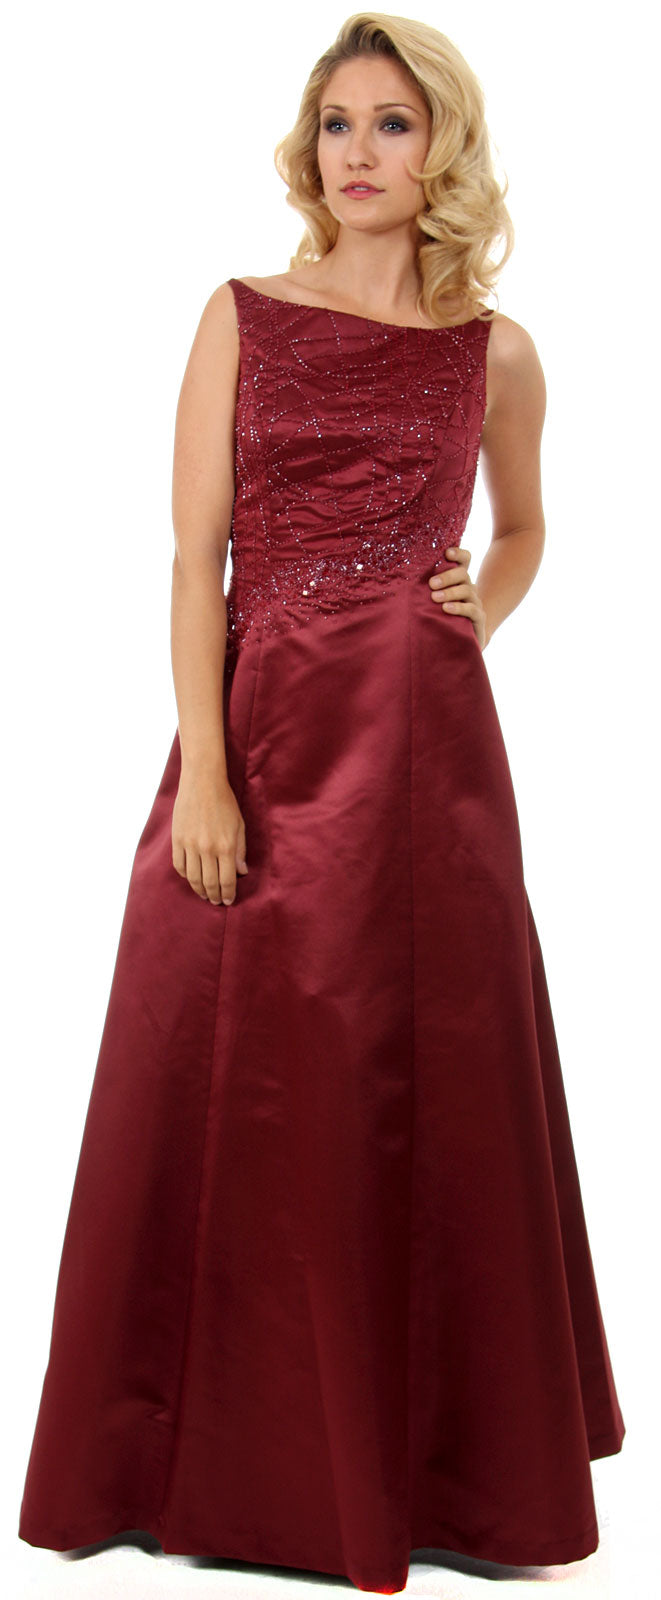 Main image of Boat Neck A-line Beaded Classic Formal Prom Dress